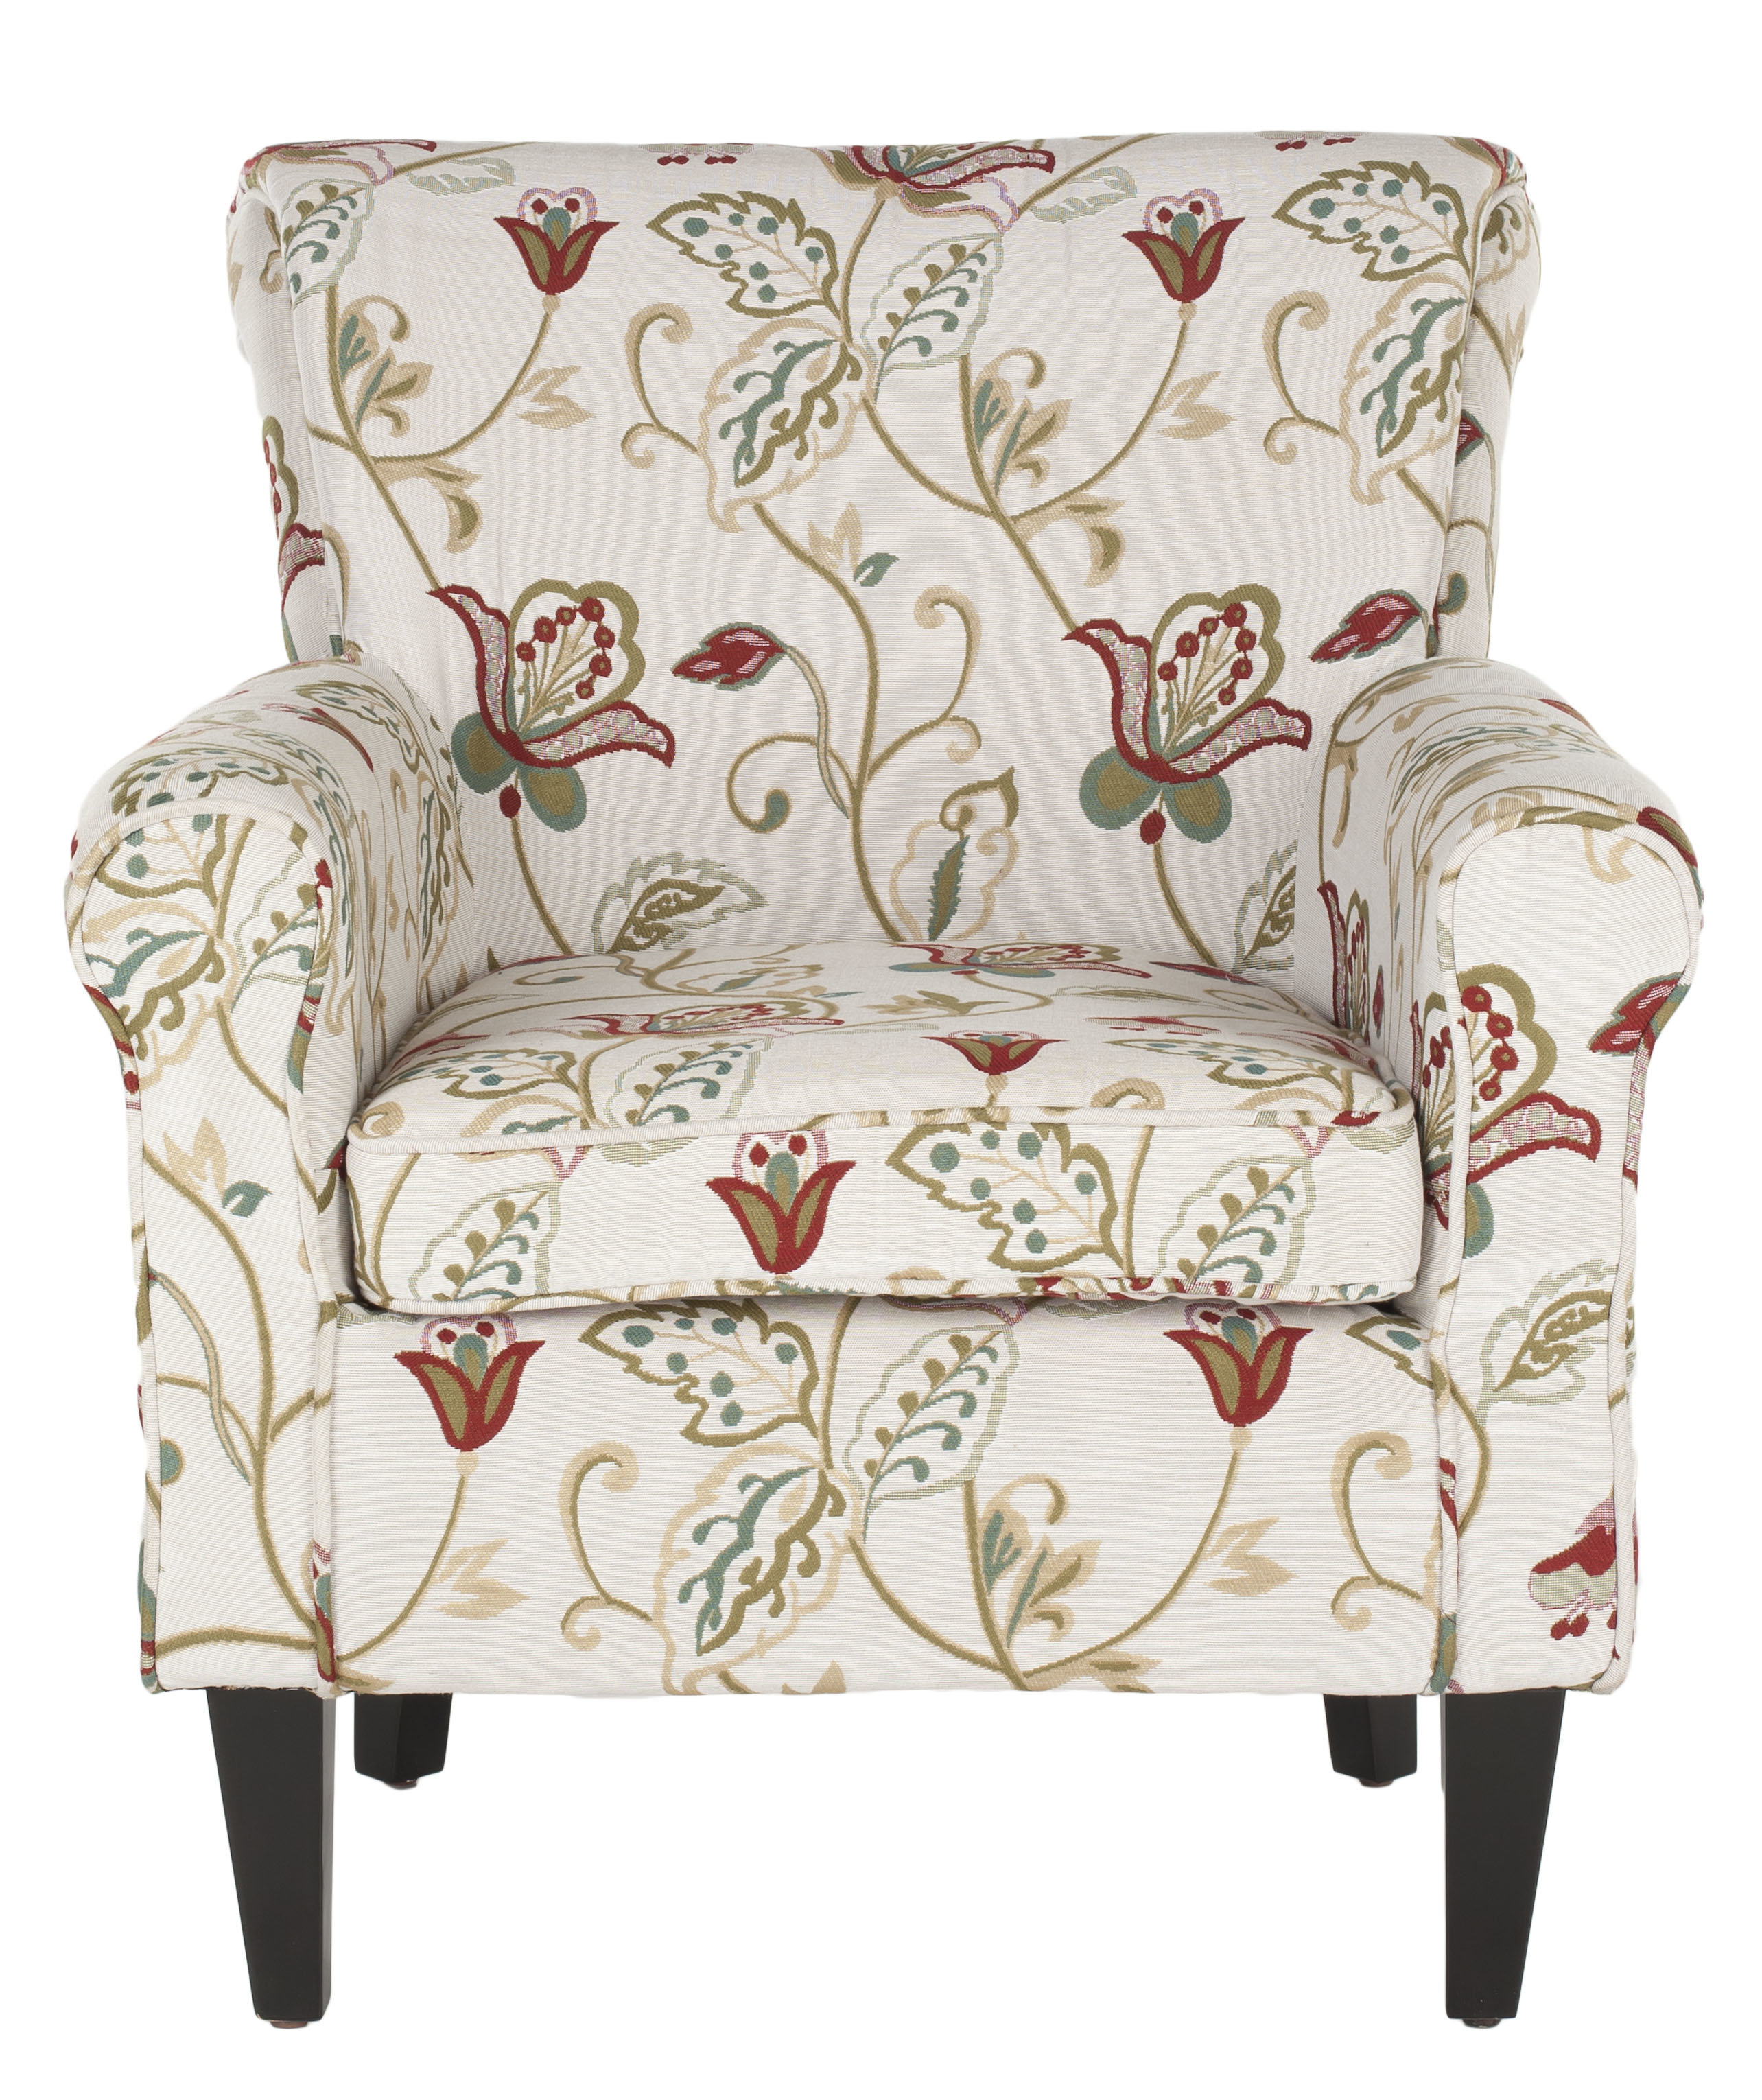 floral accent chairs you love montgomery armchair red save swivel laptop desk leather electric recliner sofa orange dfs freya patchwork bedroom chair small garden table cover